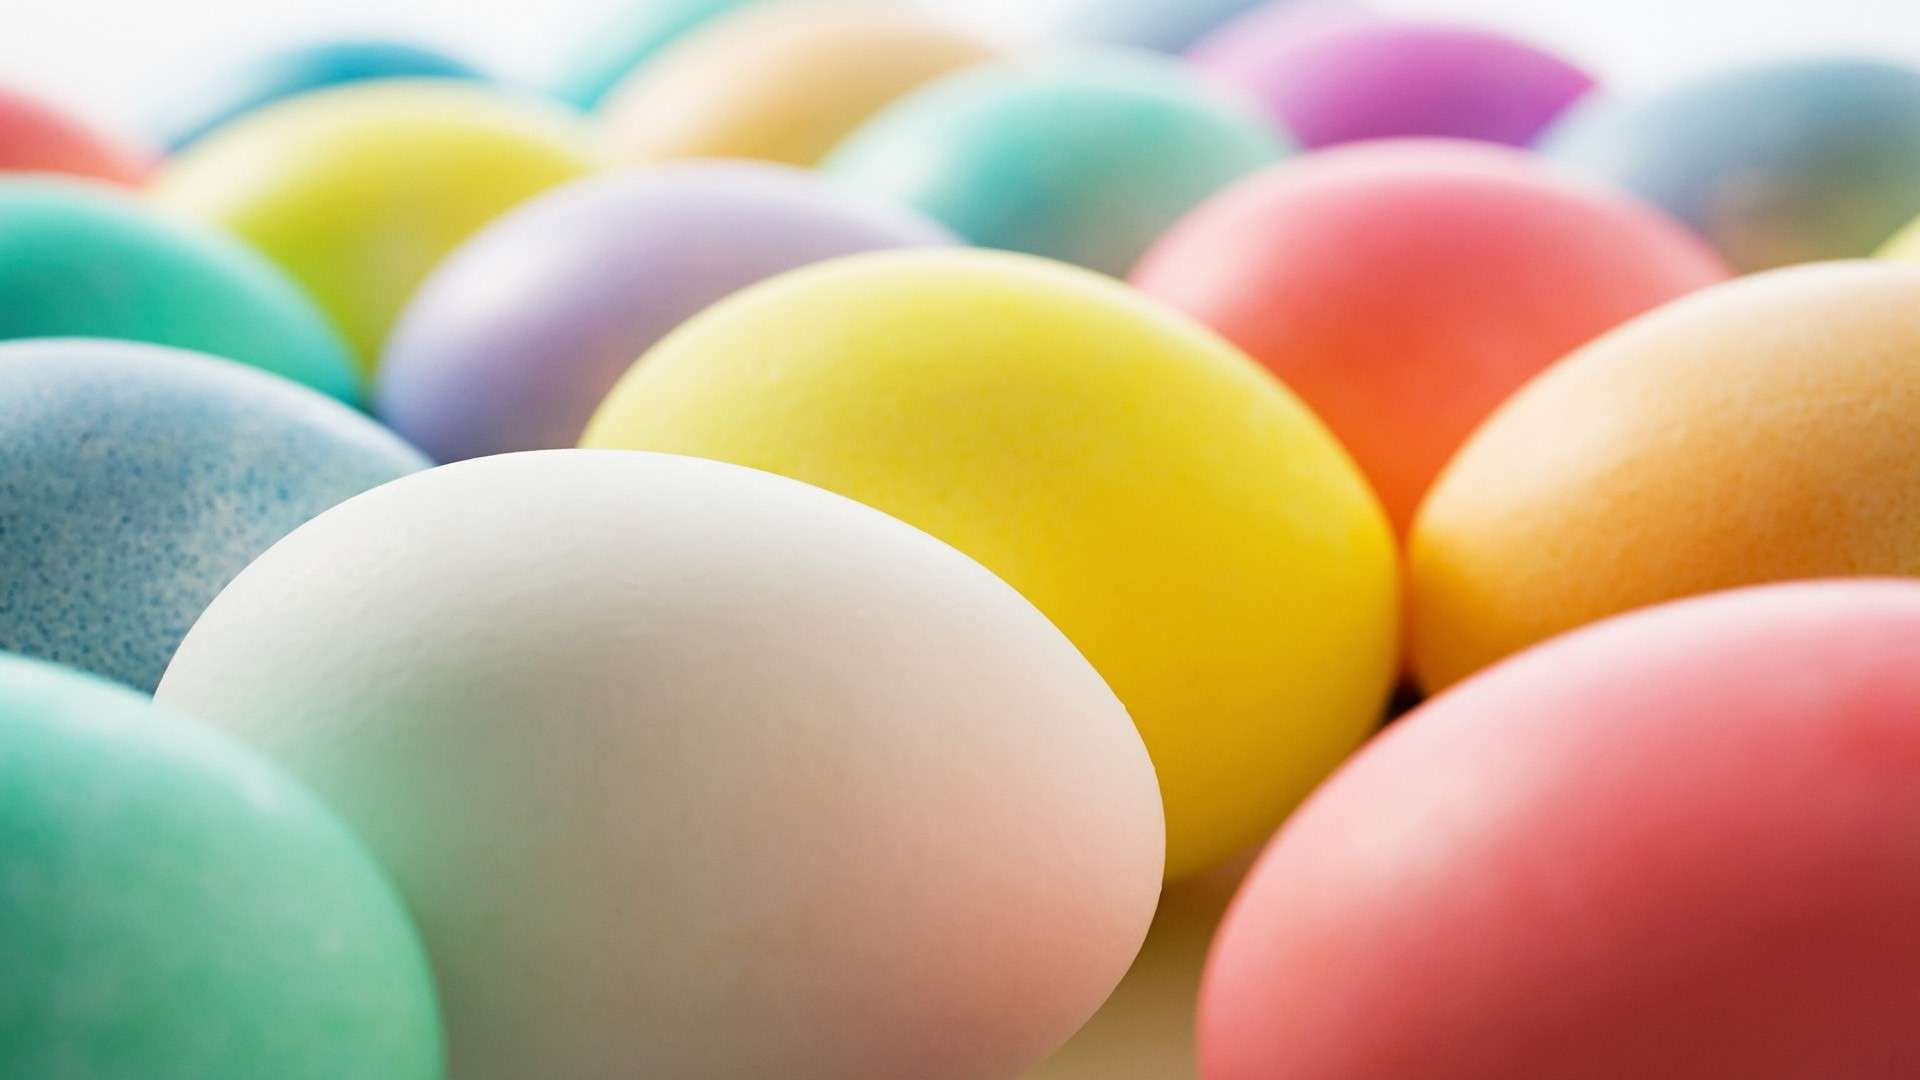 Get Easter Eggs | 1920 x 1080 | Download | Close